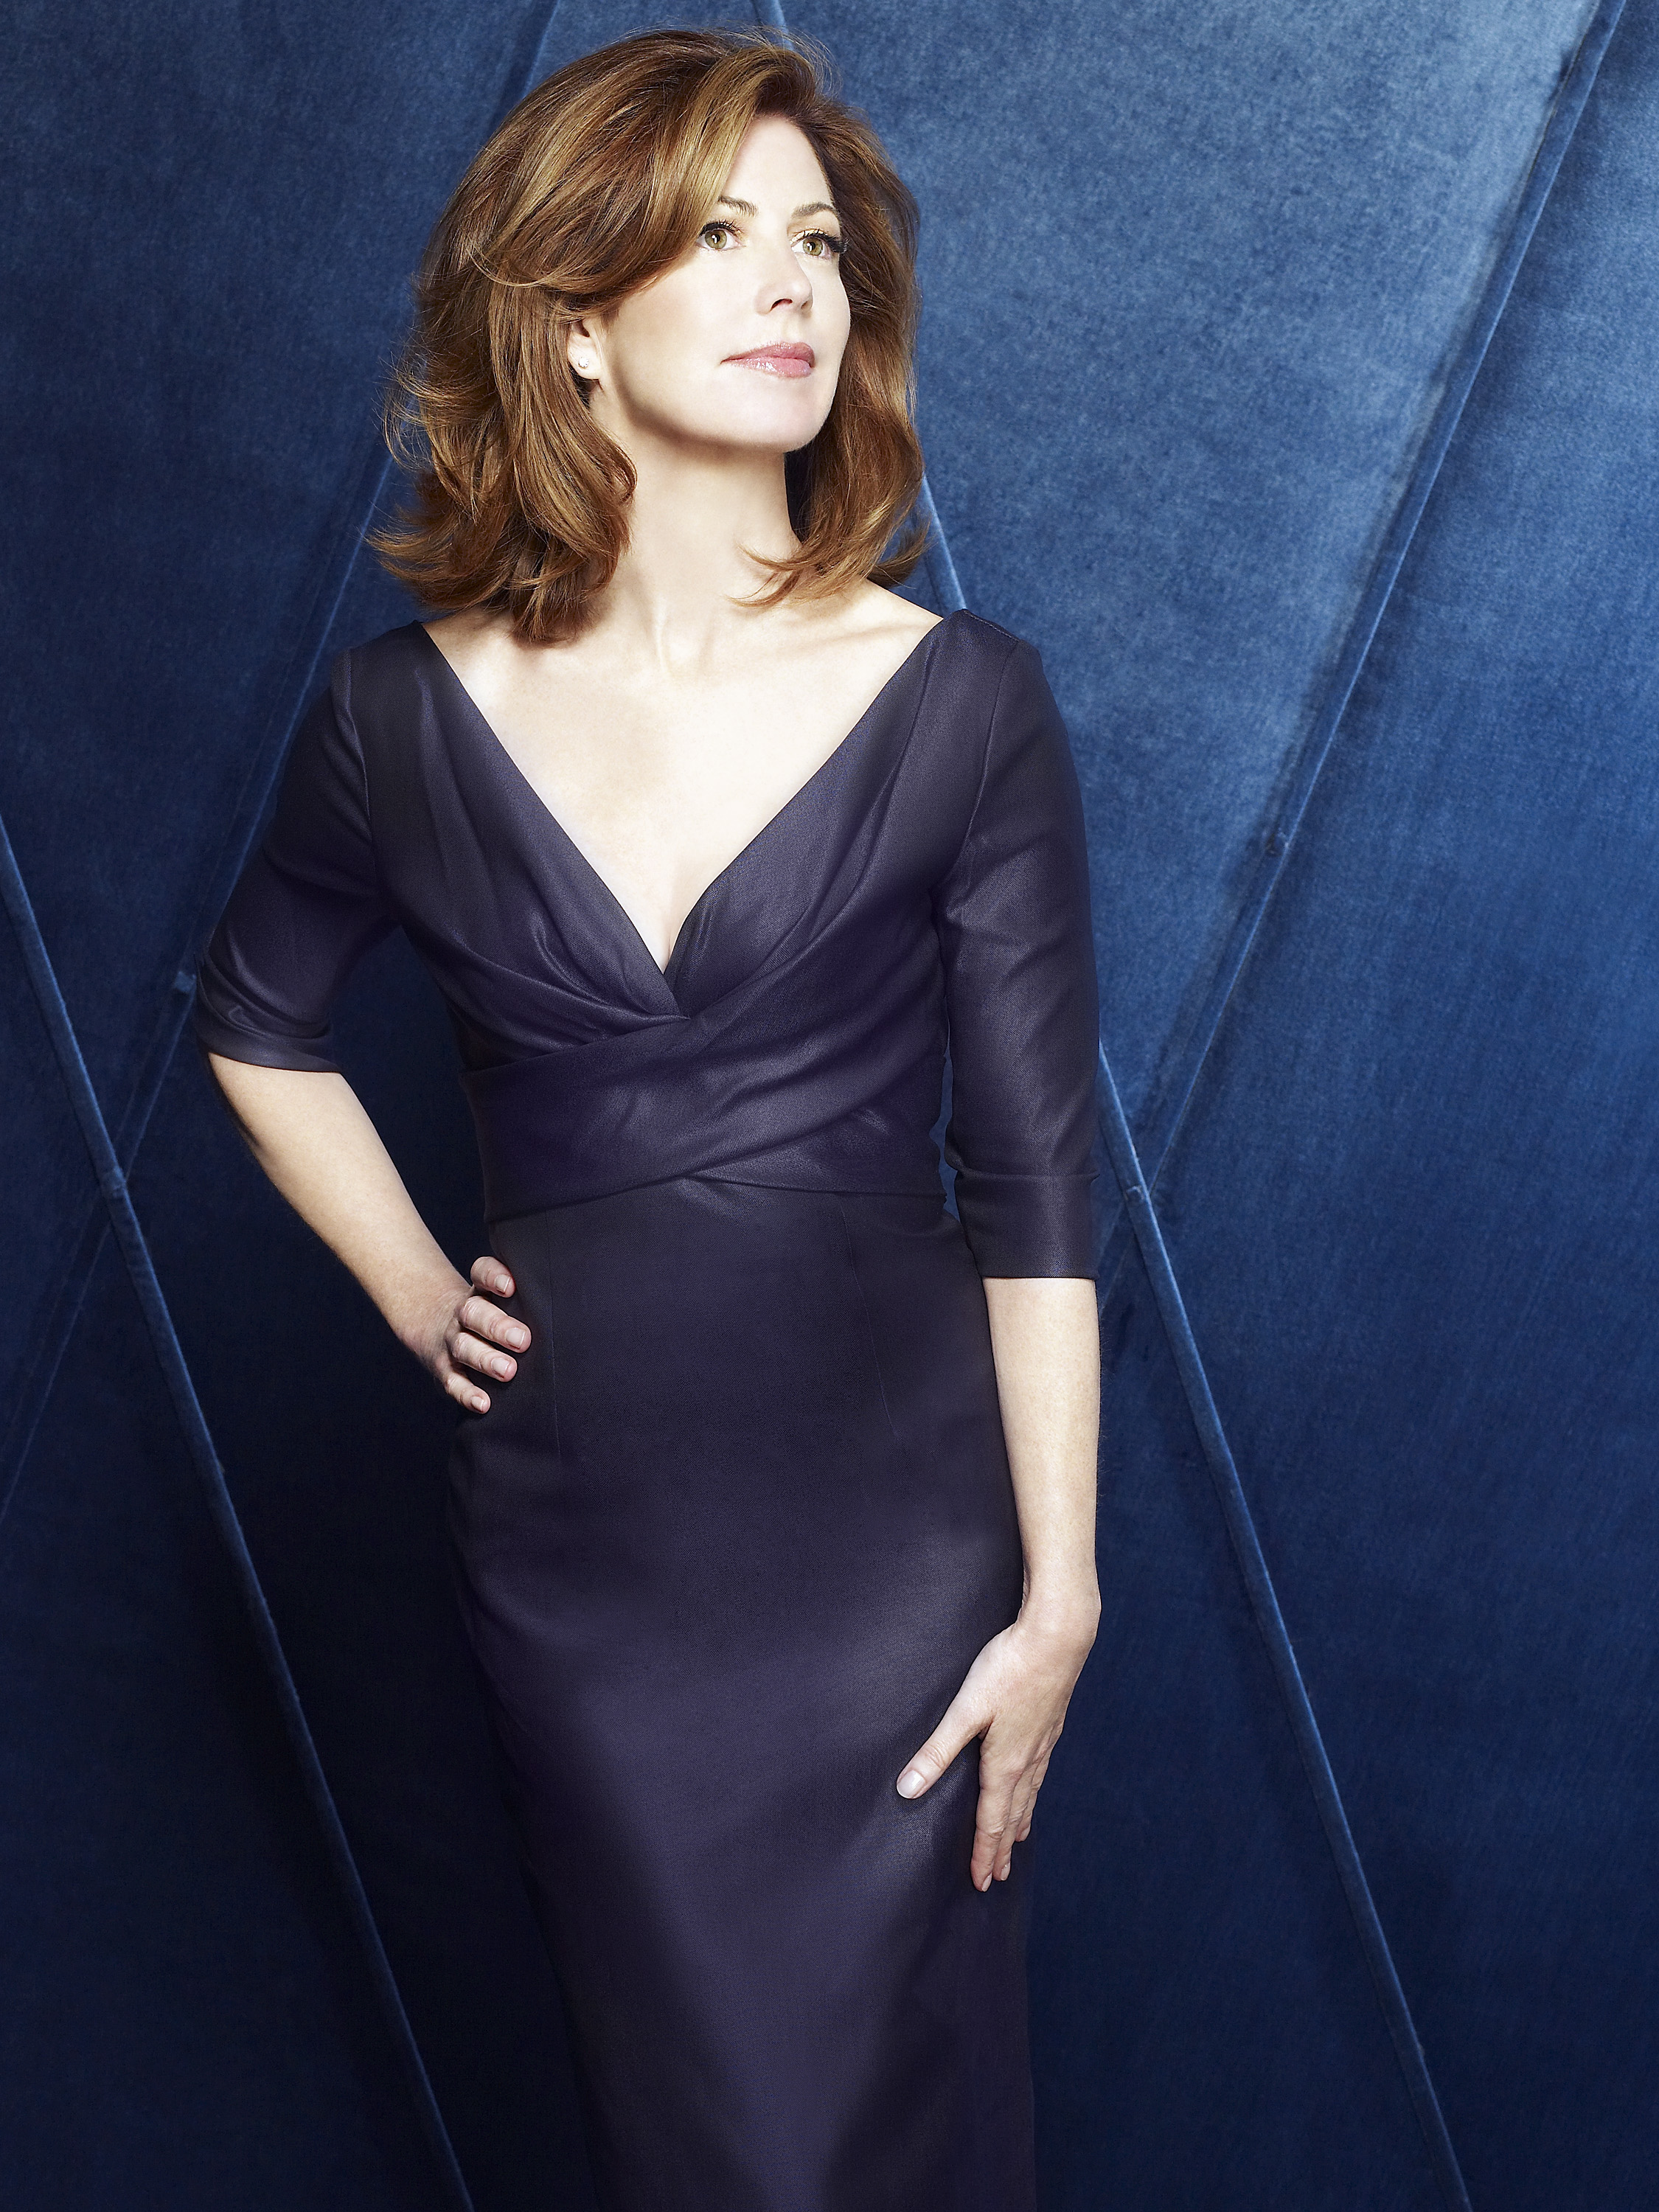 Dana delany desperate housewives realize, told